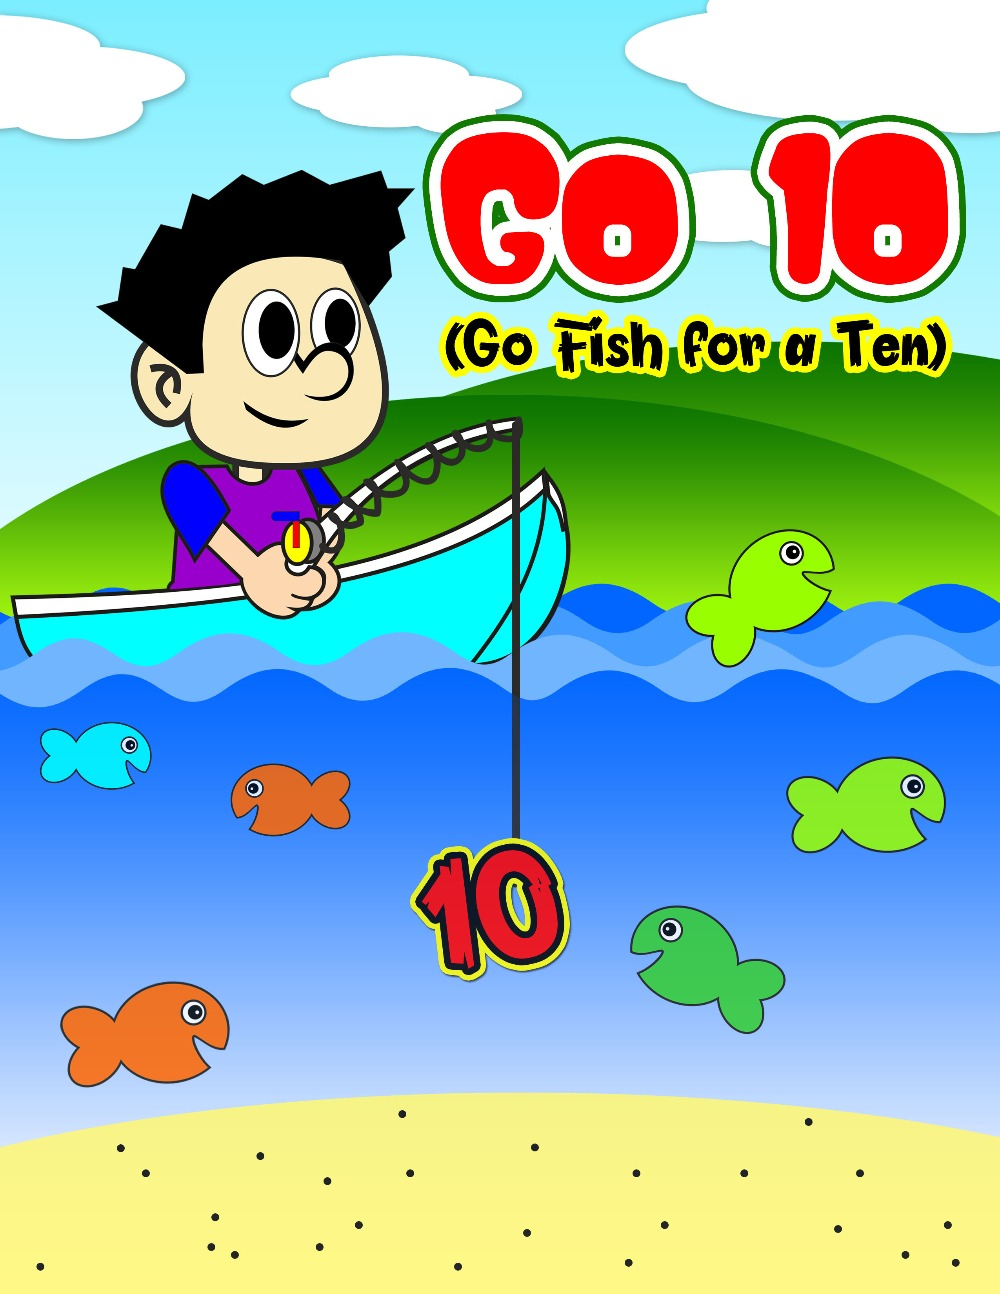 Go 10 (Go Fish for a Ten)